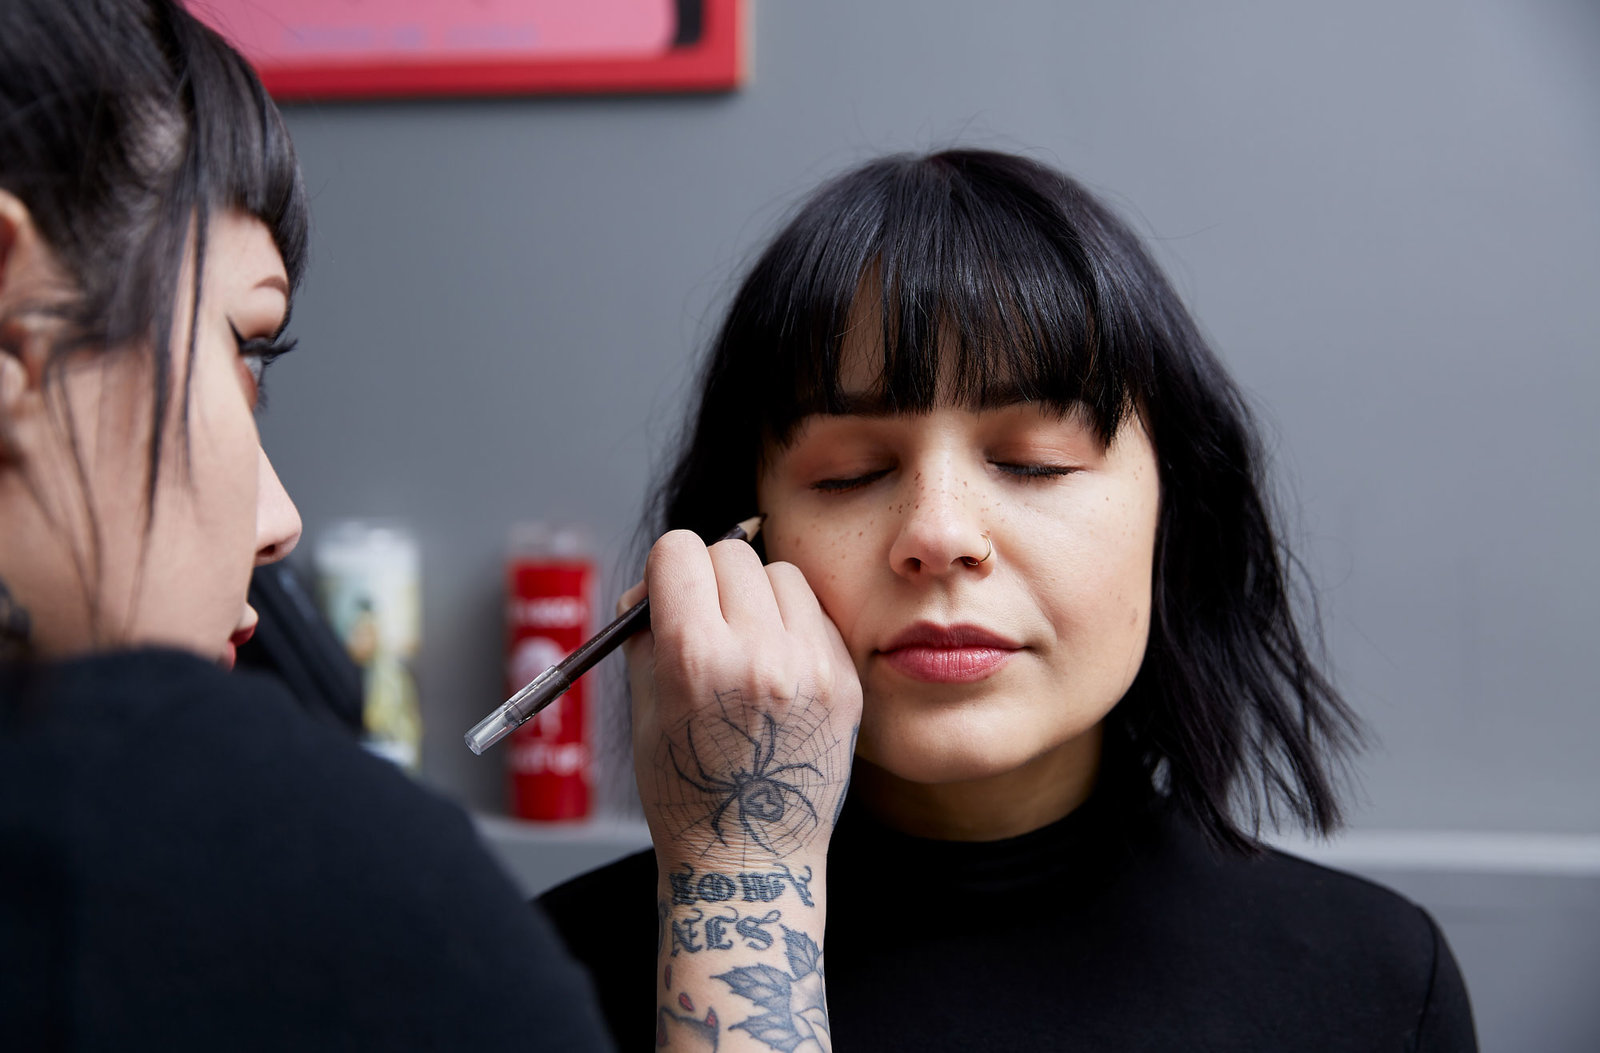 Freckle Tattoos Are The Next Big Thing In Beauty Instylecom